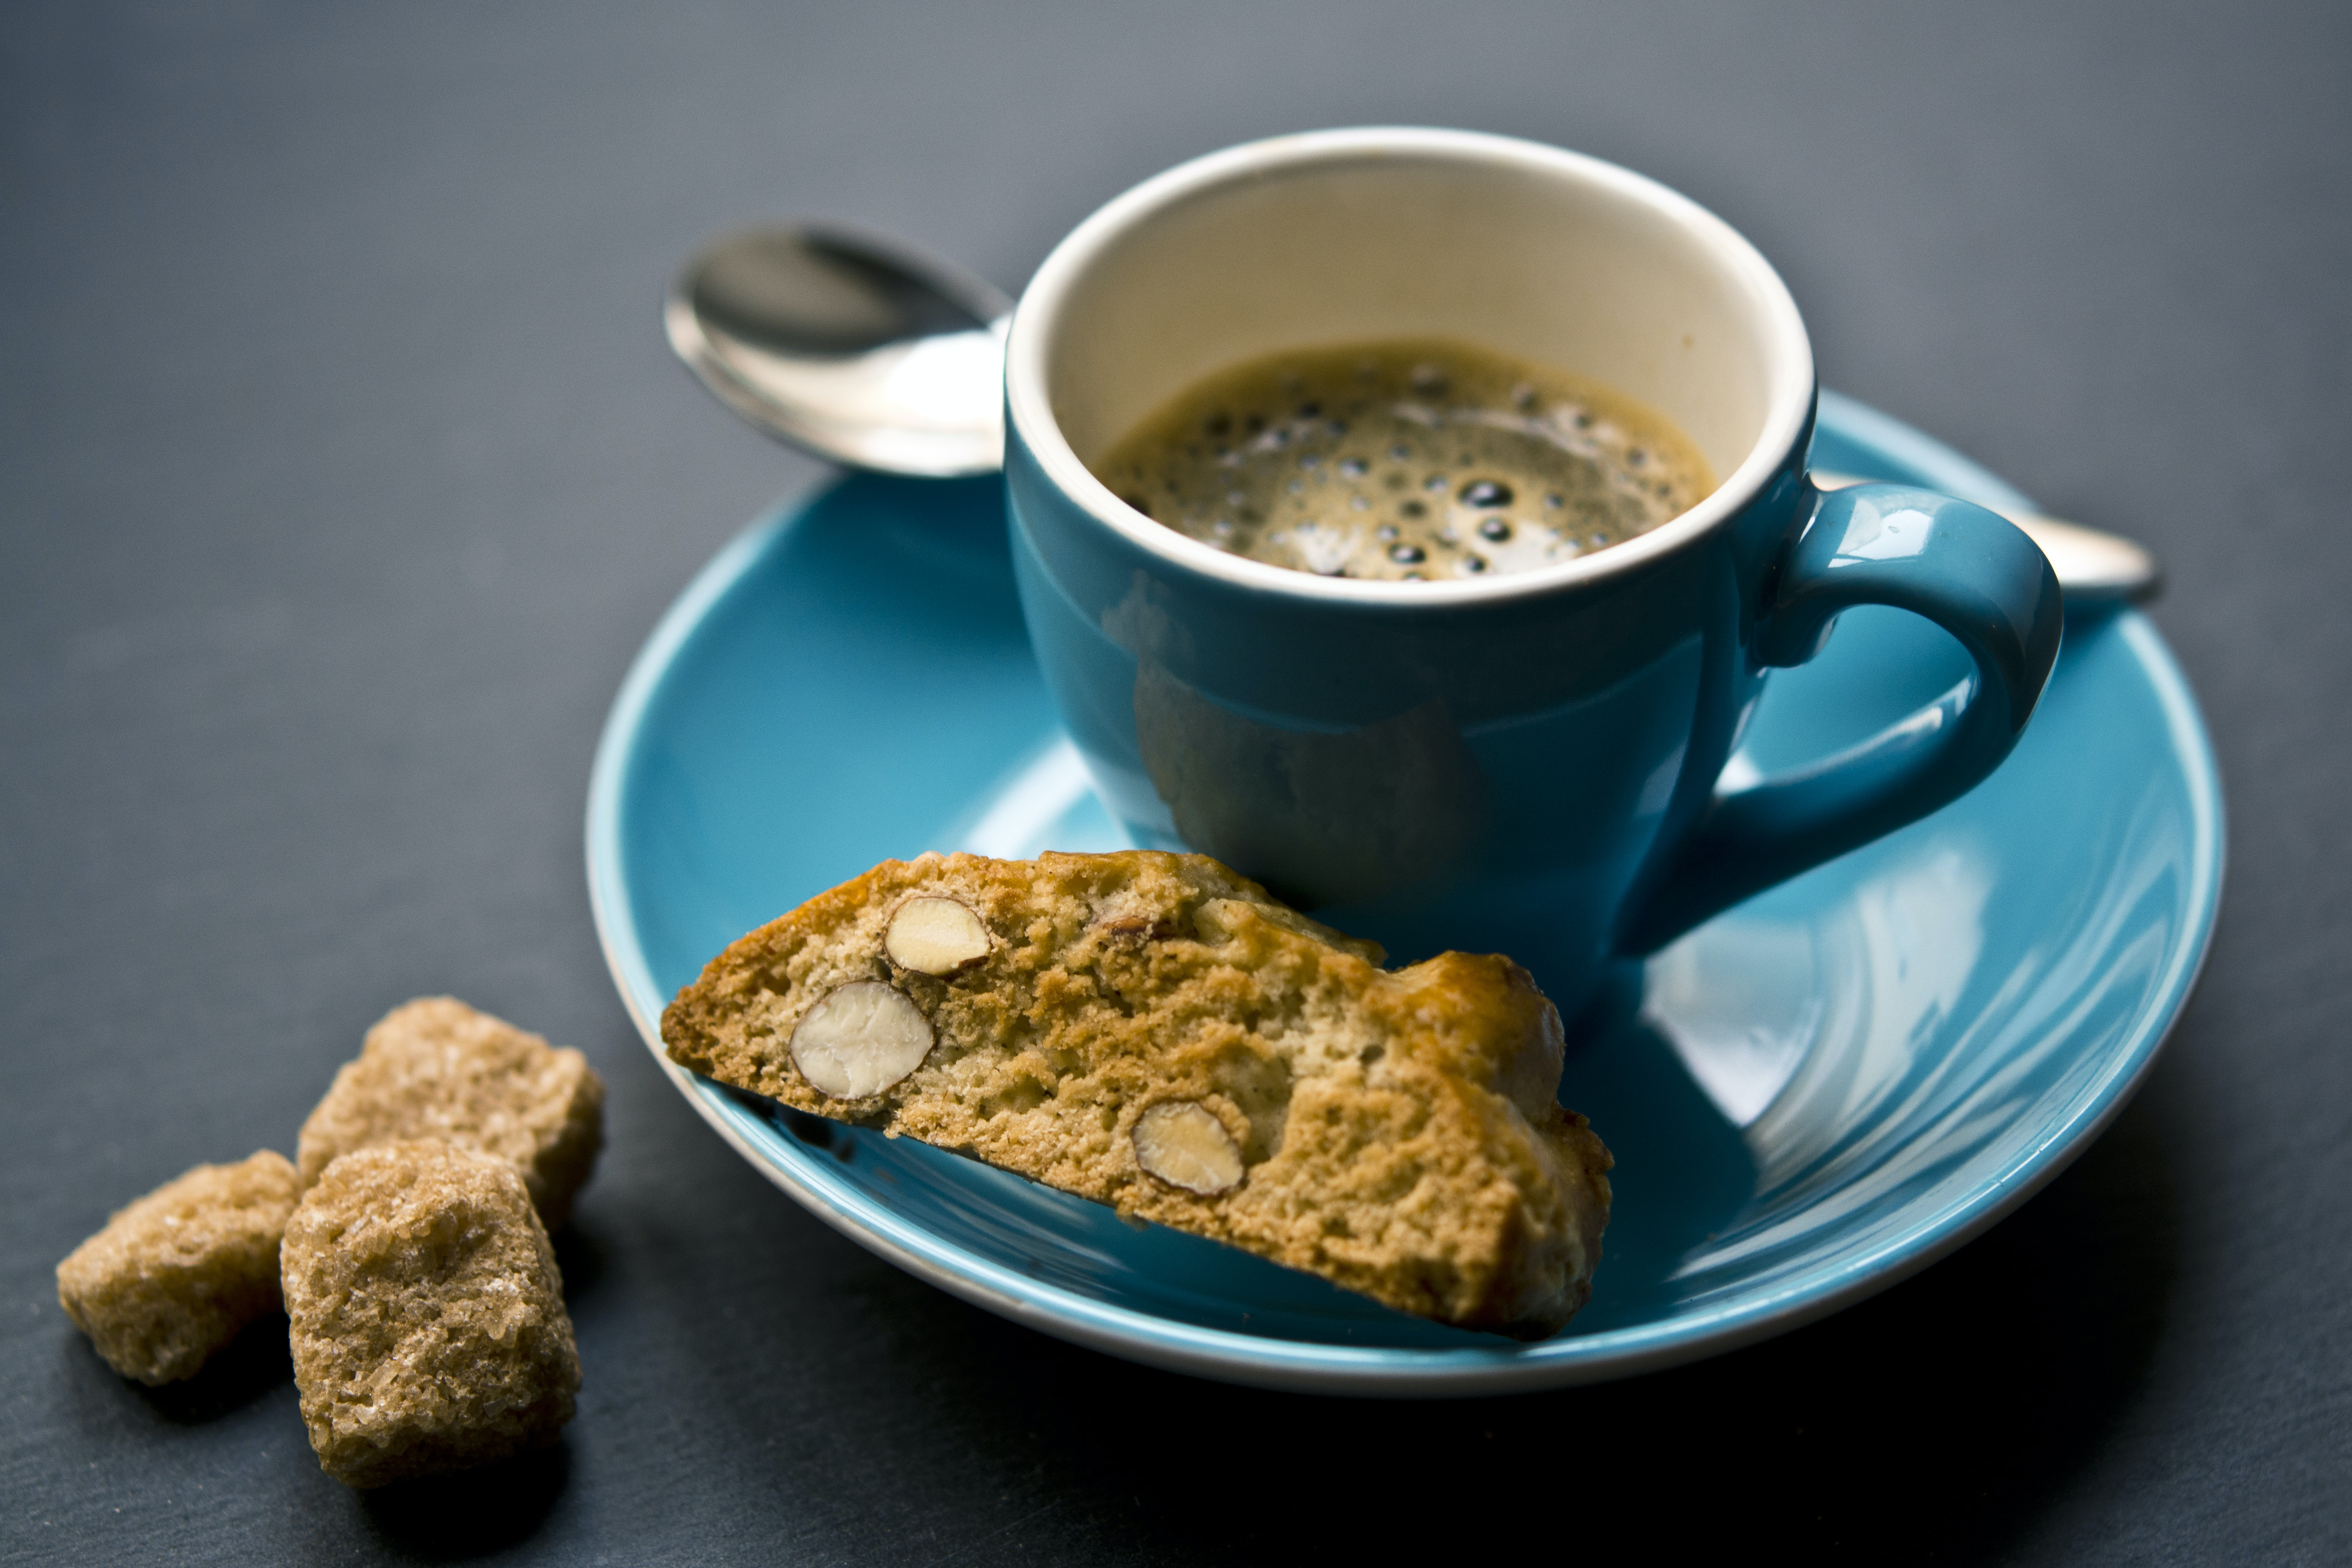 cup of coffee and bread on saucer closeup photography